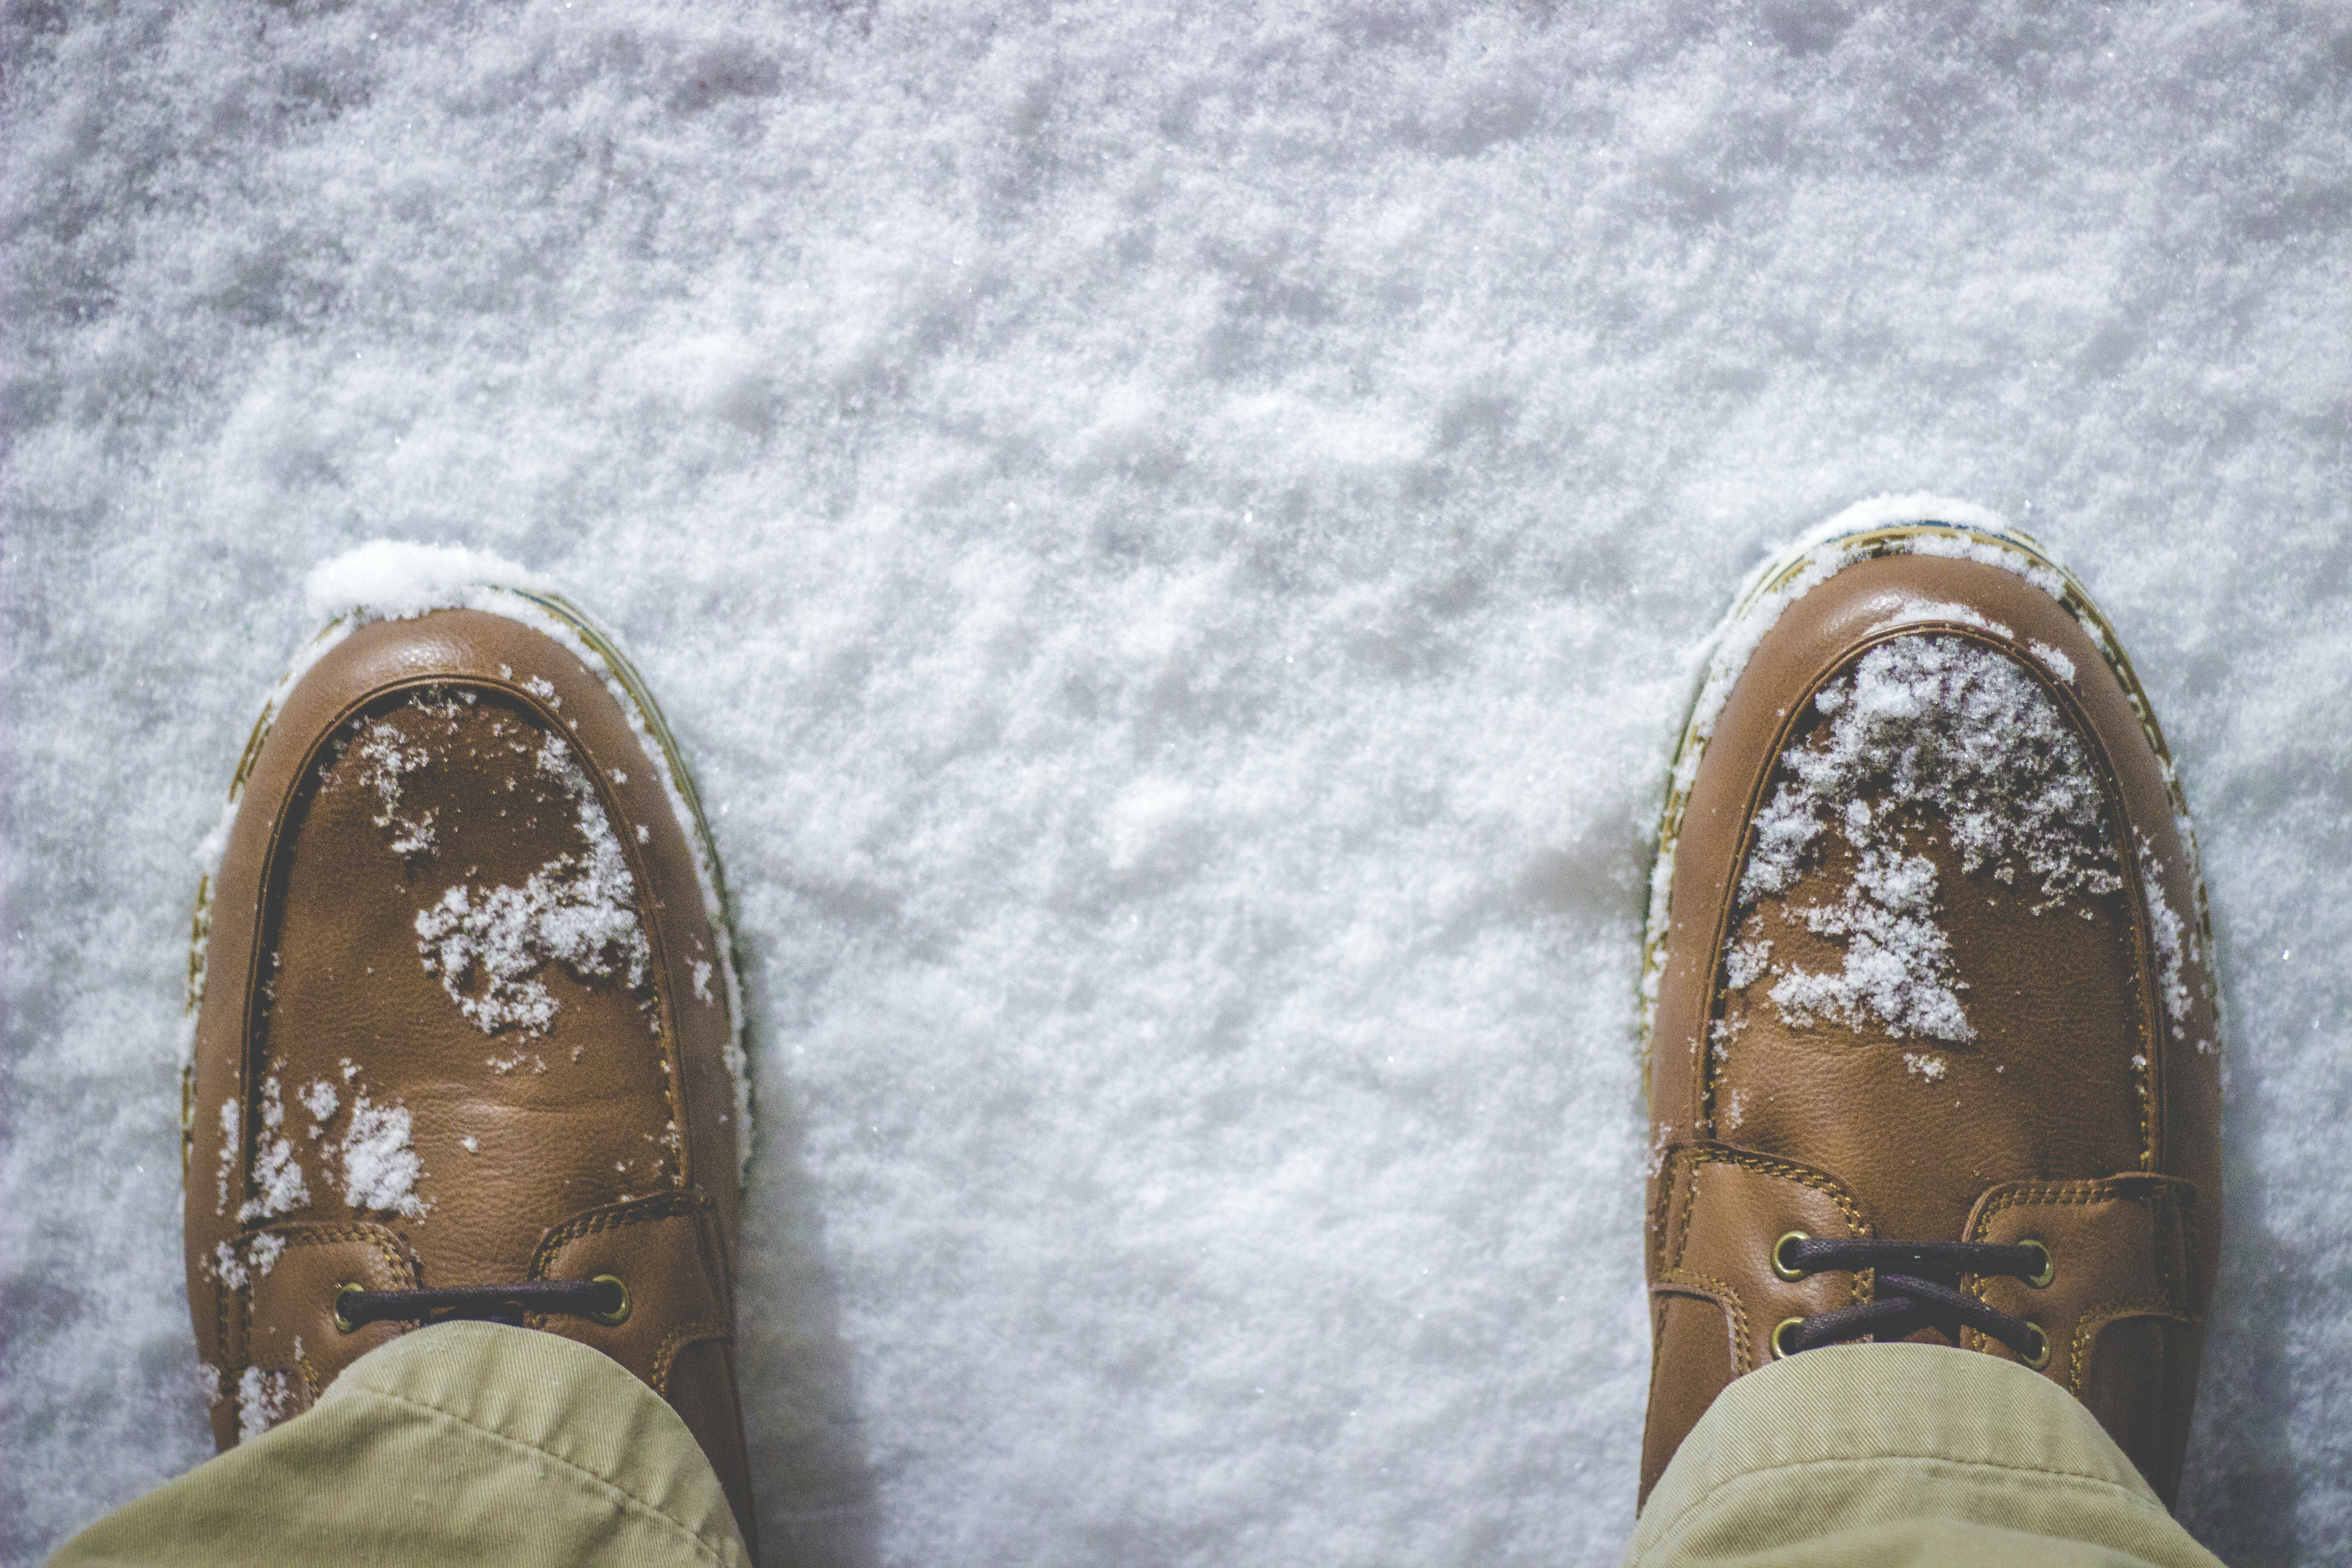 Macro shot of a man's shoes with snow on them, taken in Battle Creek